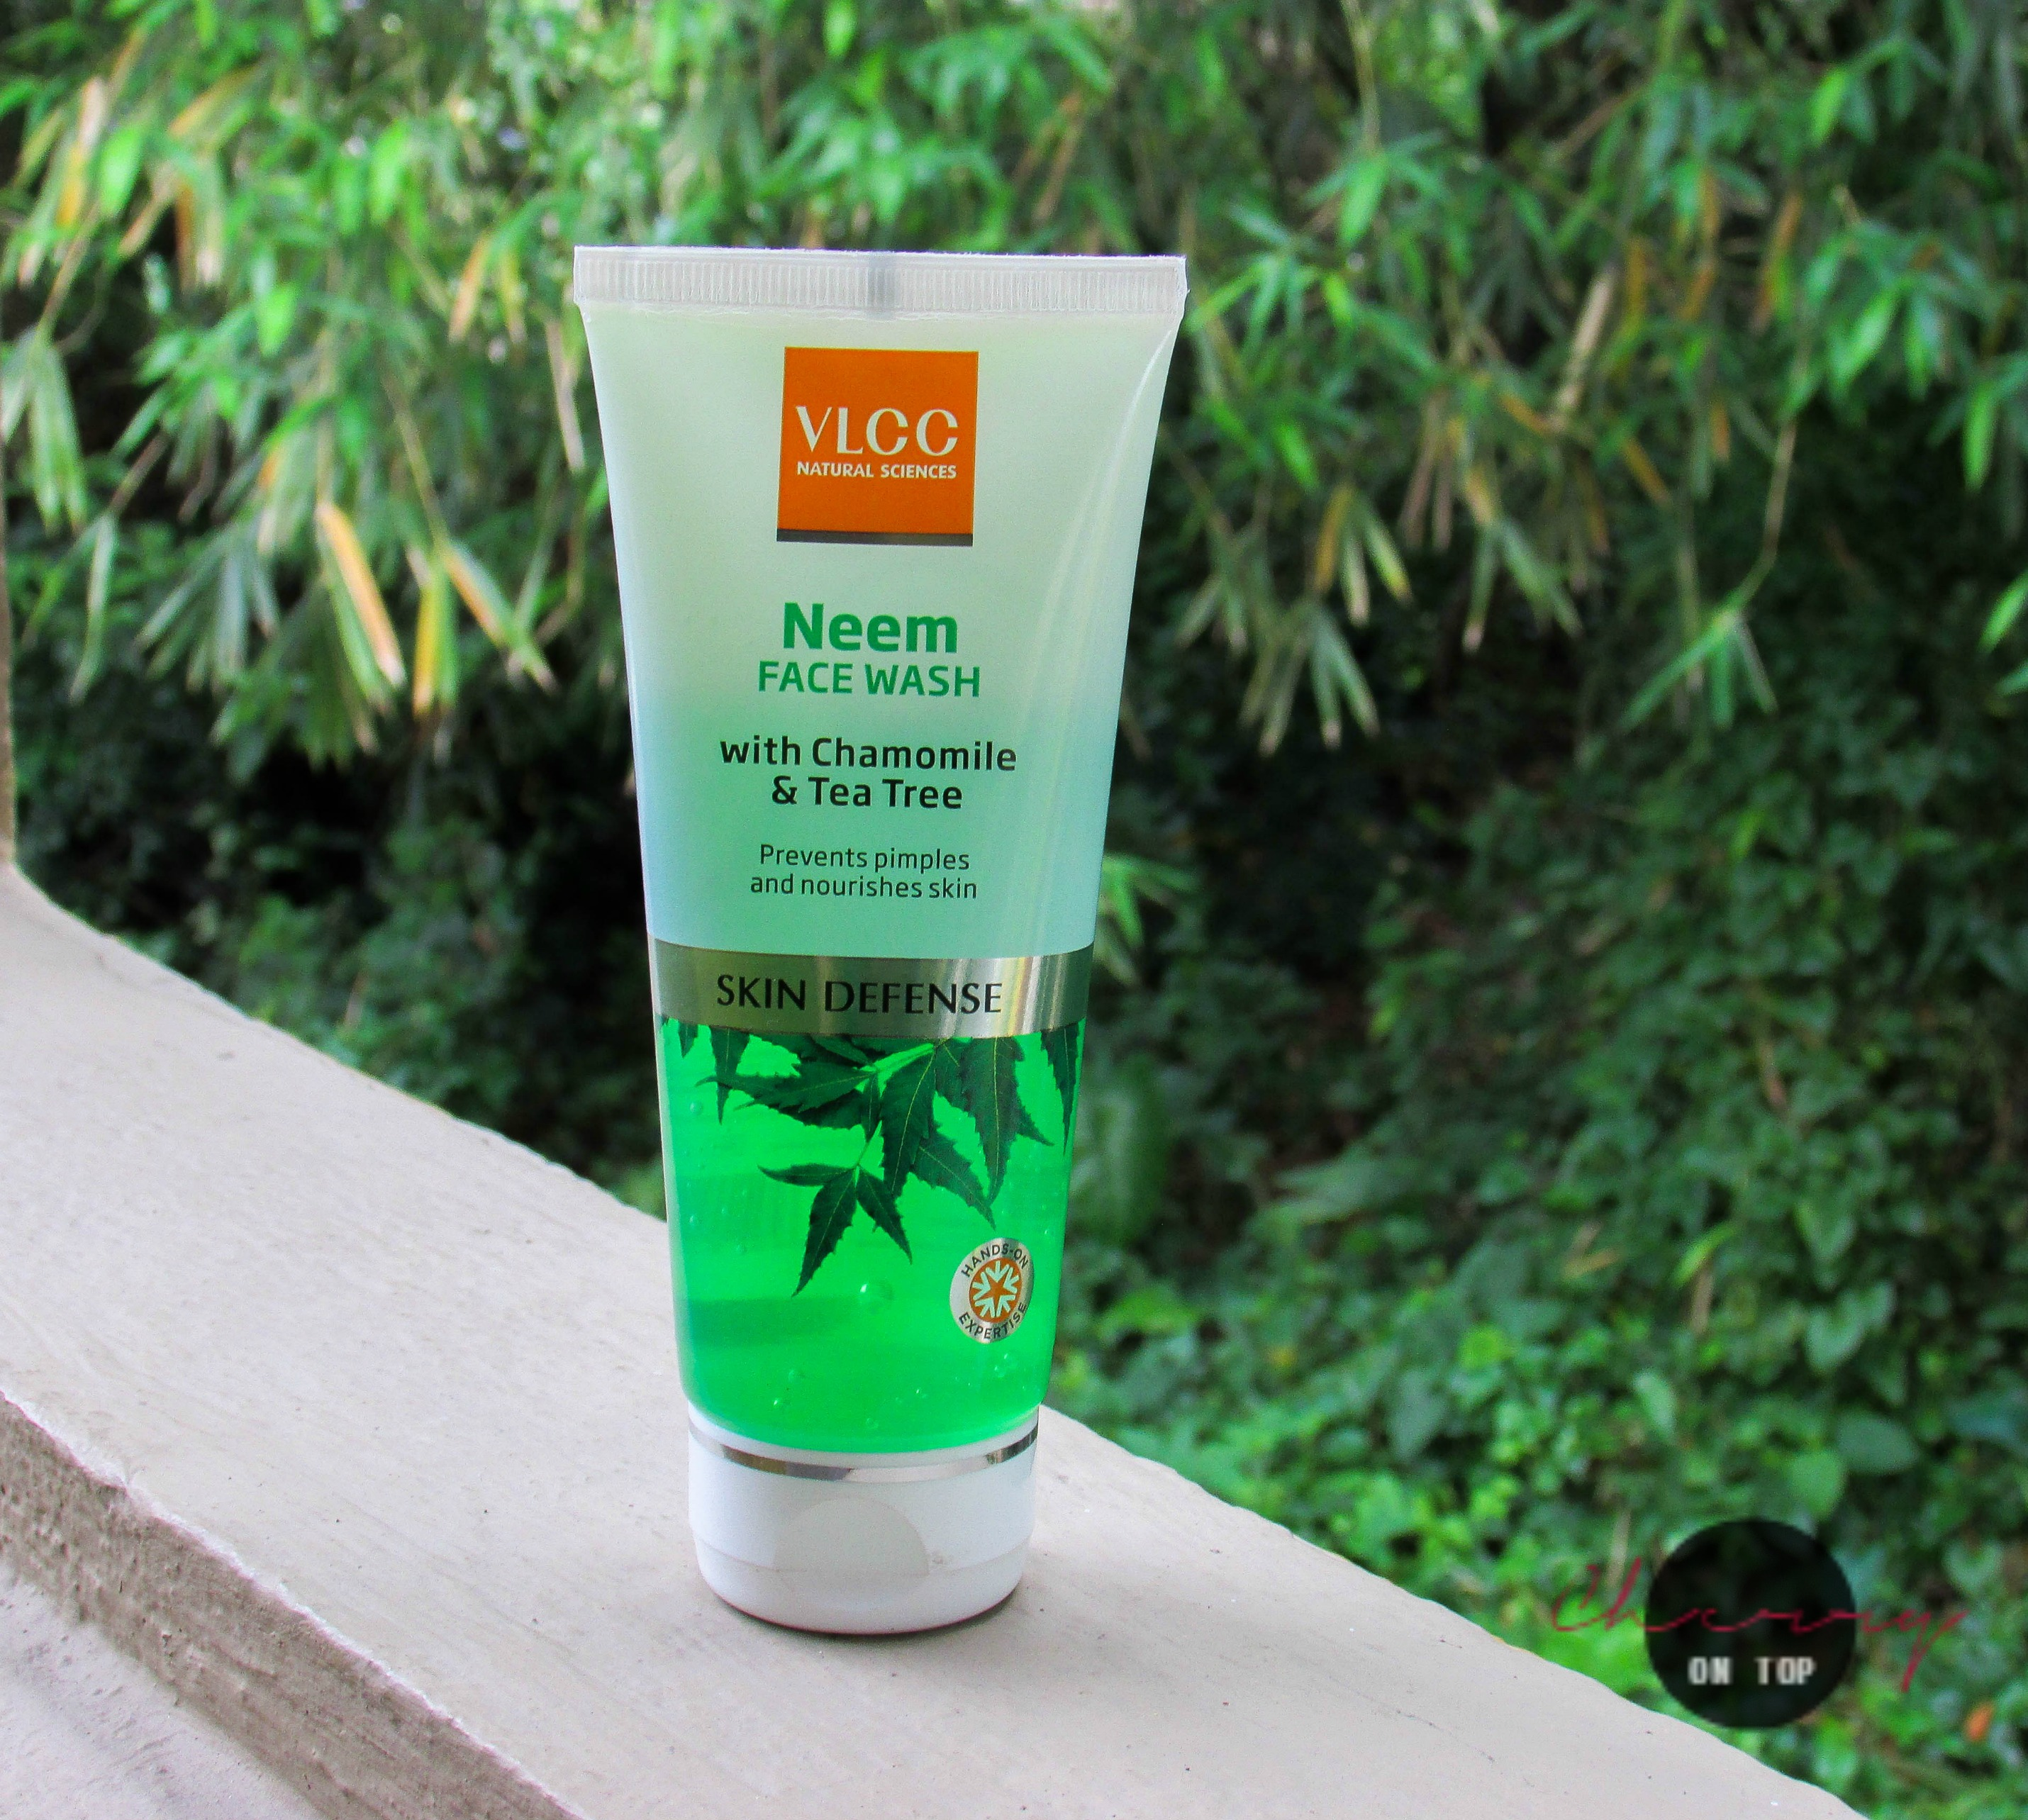 VLCC Neem Face Wash Review | Cherry On Top